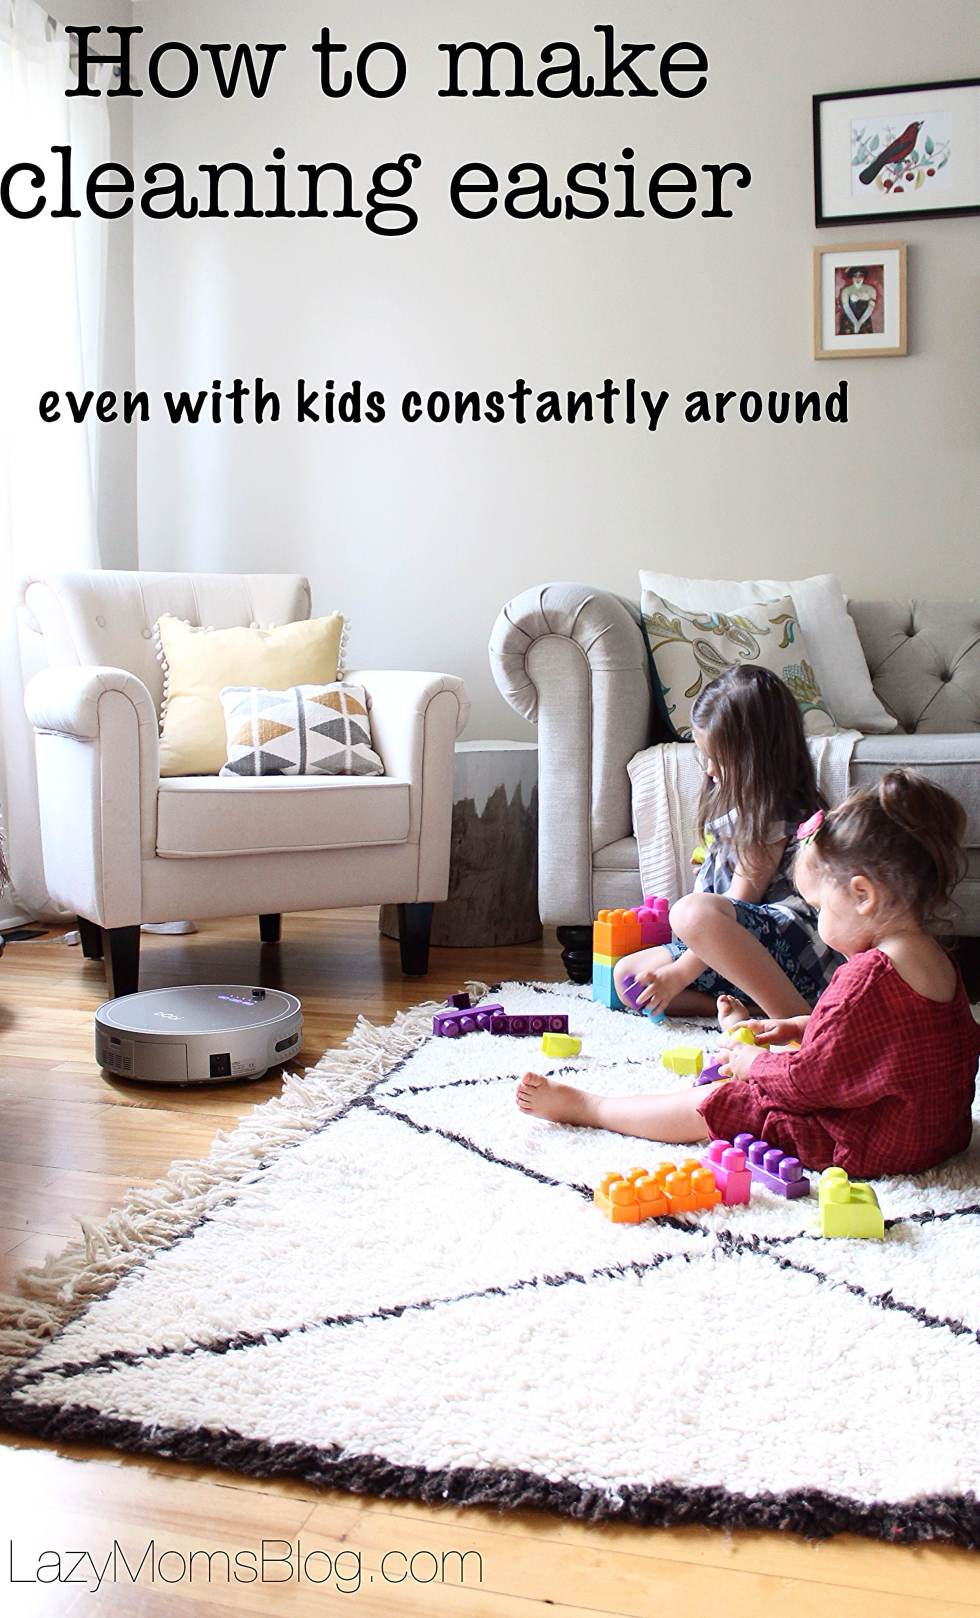 how to make cleaning with kids easier, even if they aways make mess, and even when you don't feel like cleaning all the time!